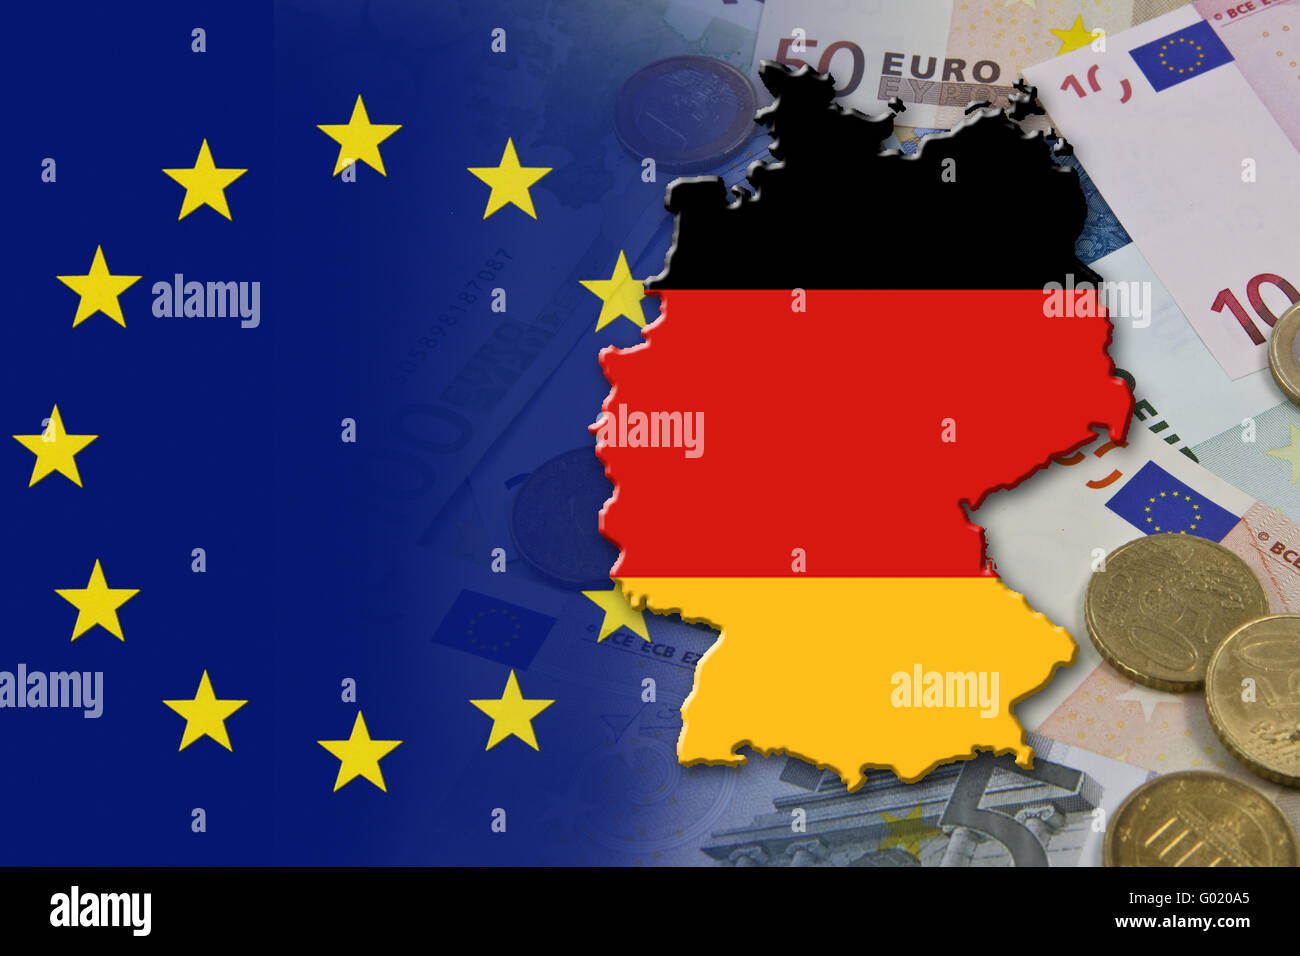 Financial and economic crisis in the euro area in Europe of the country Germany - Stock Image